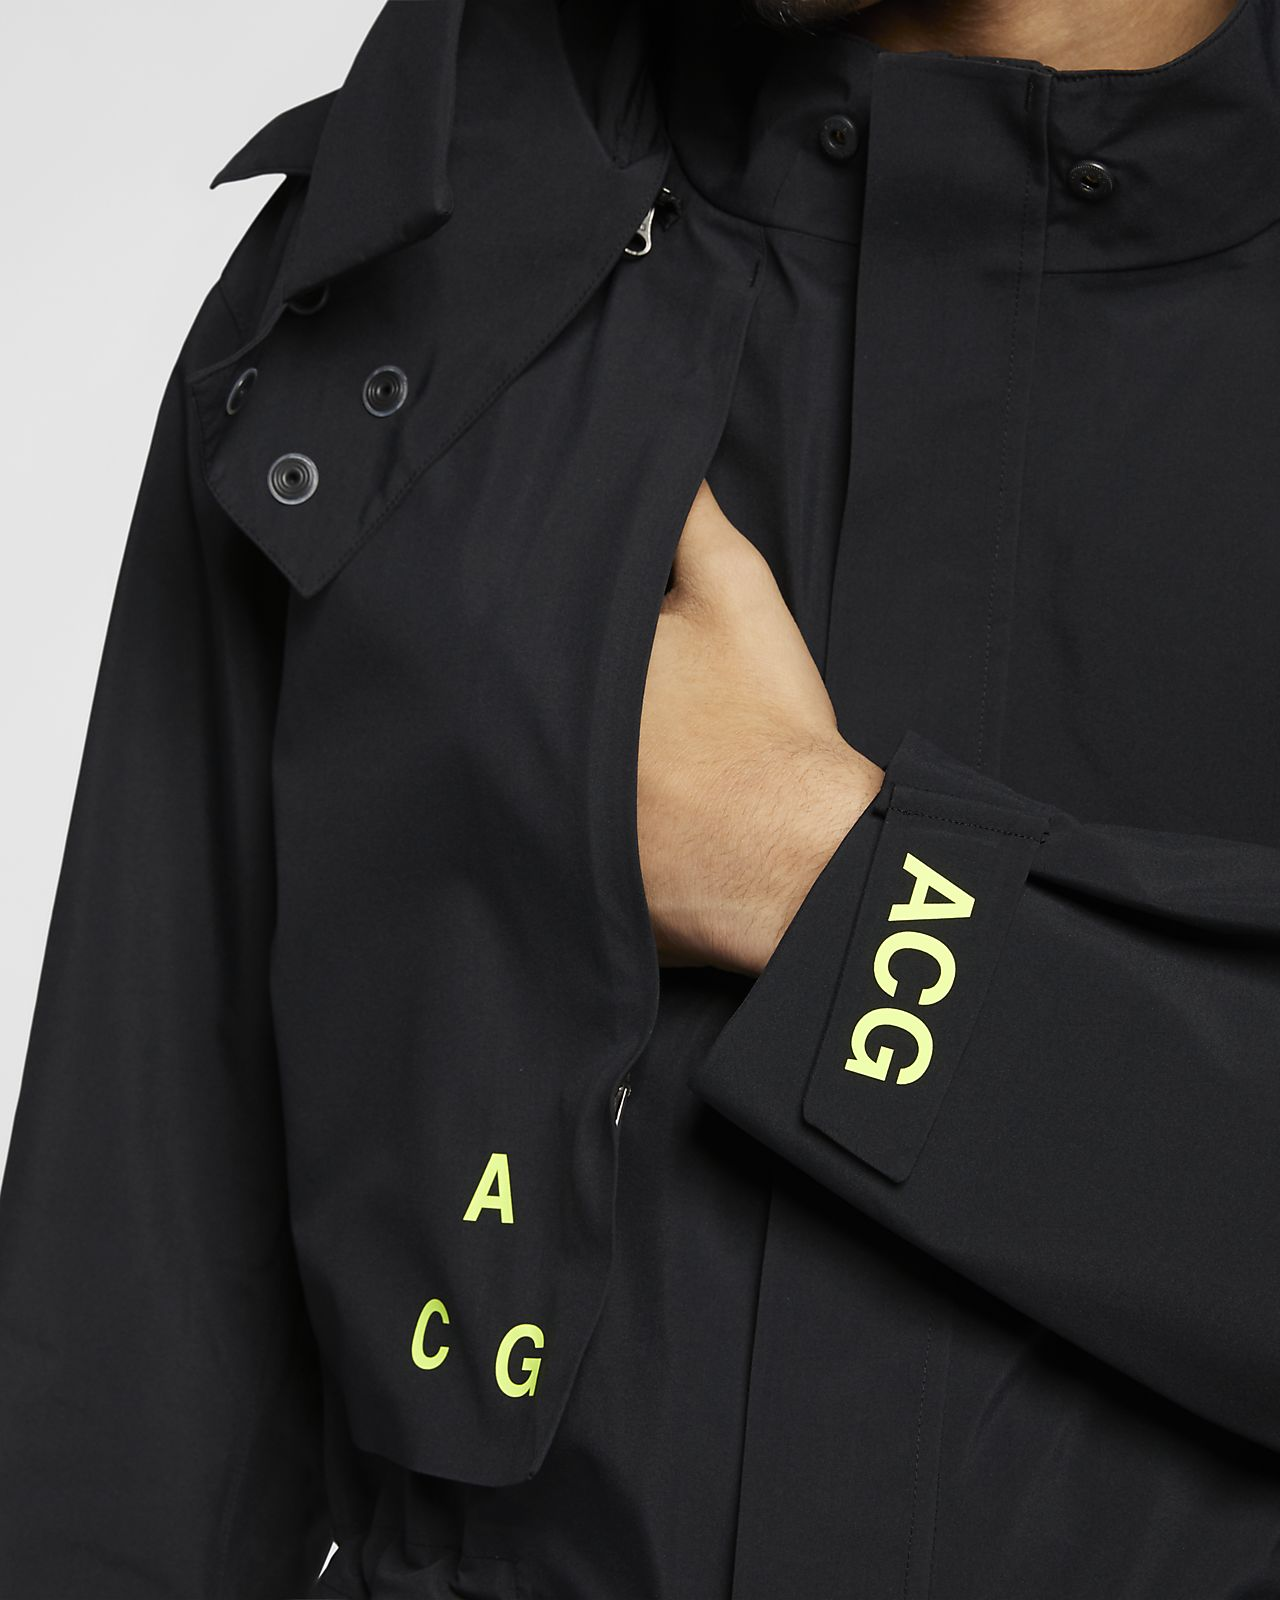 Nike ACG GORE TEX Men's Jacket. Nike GB